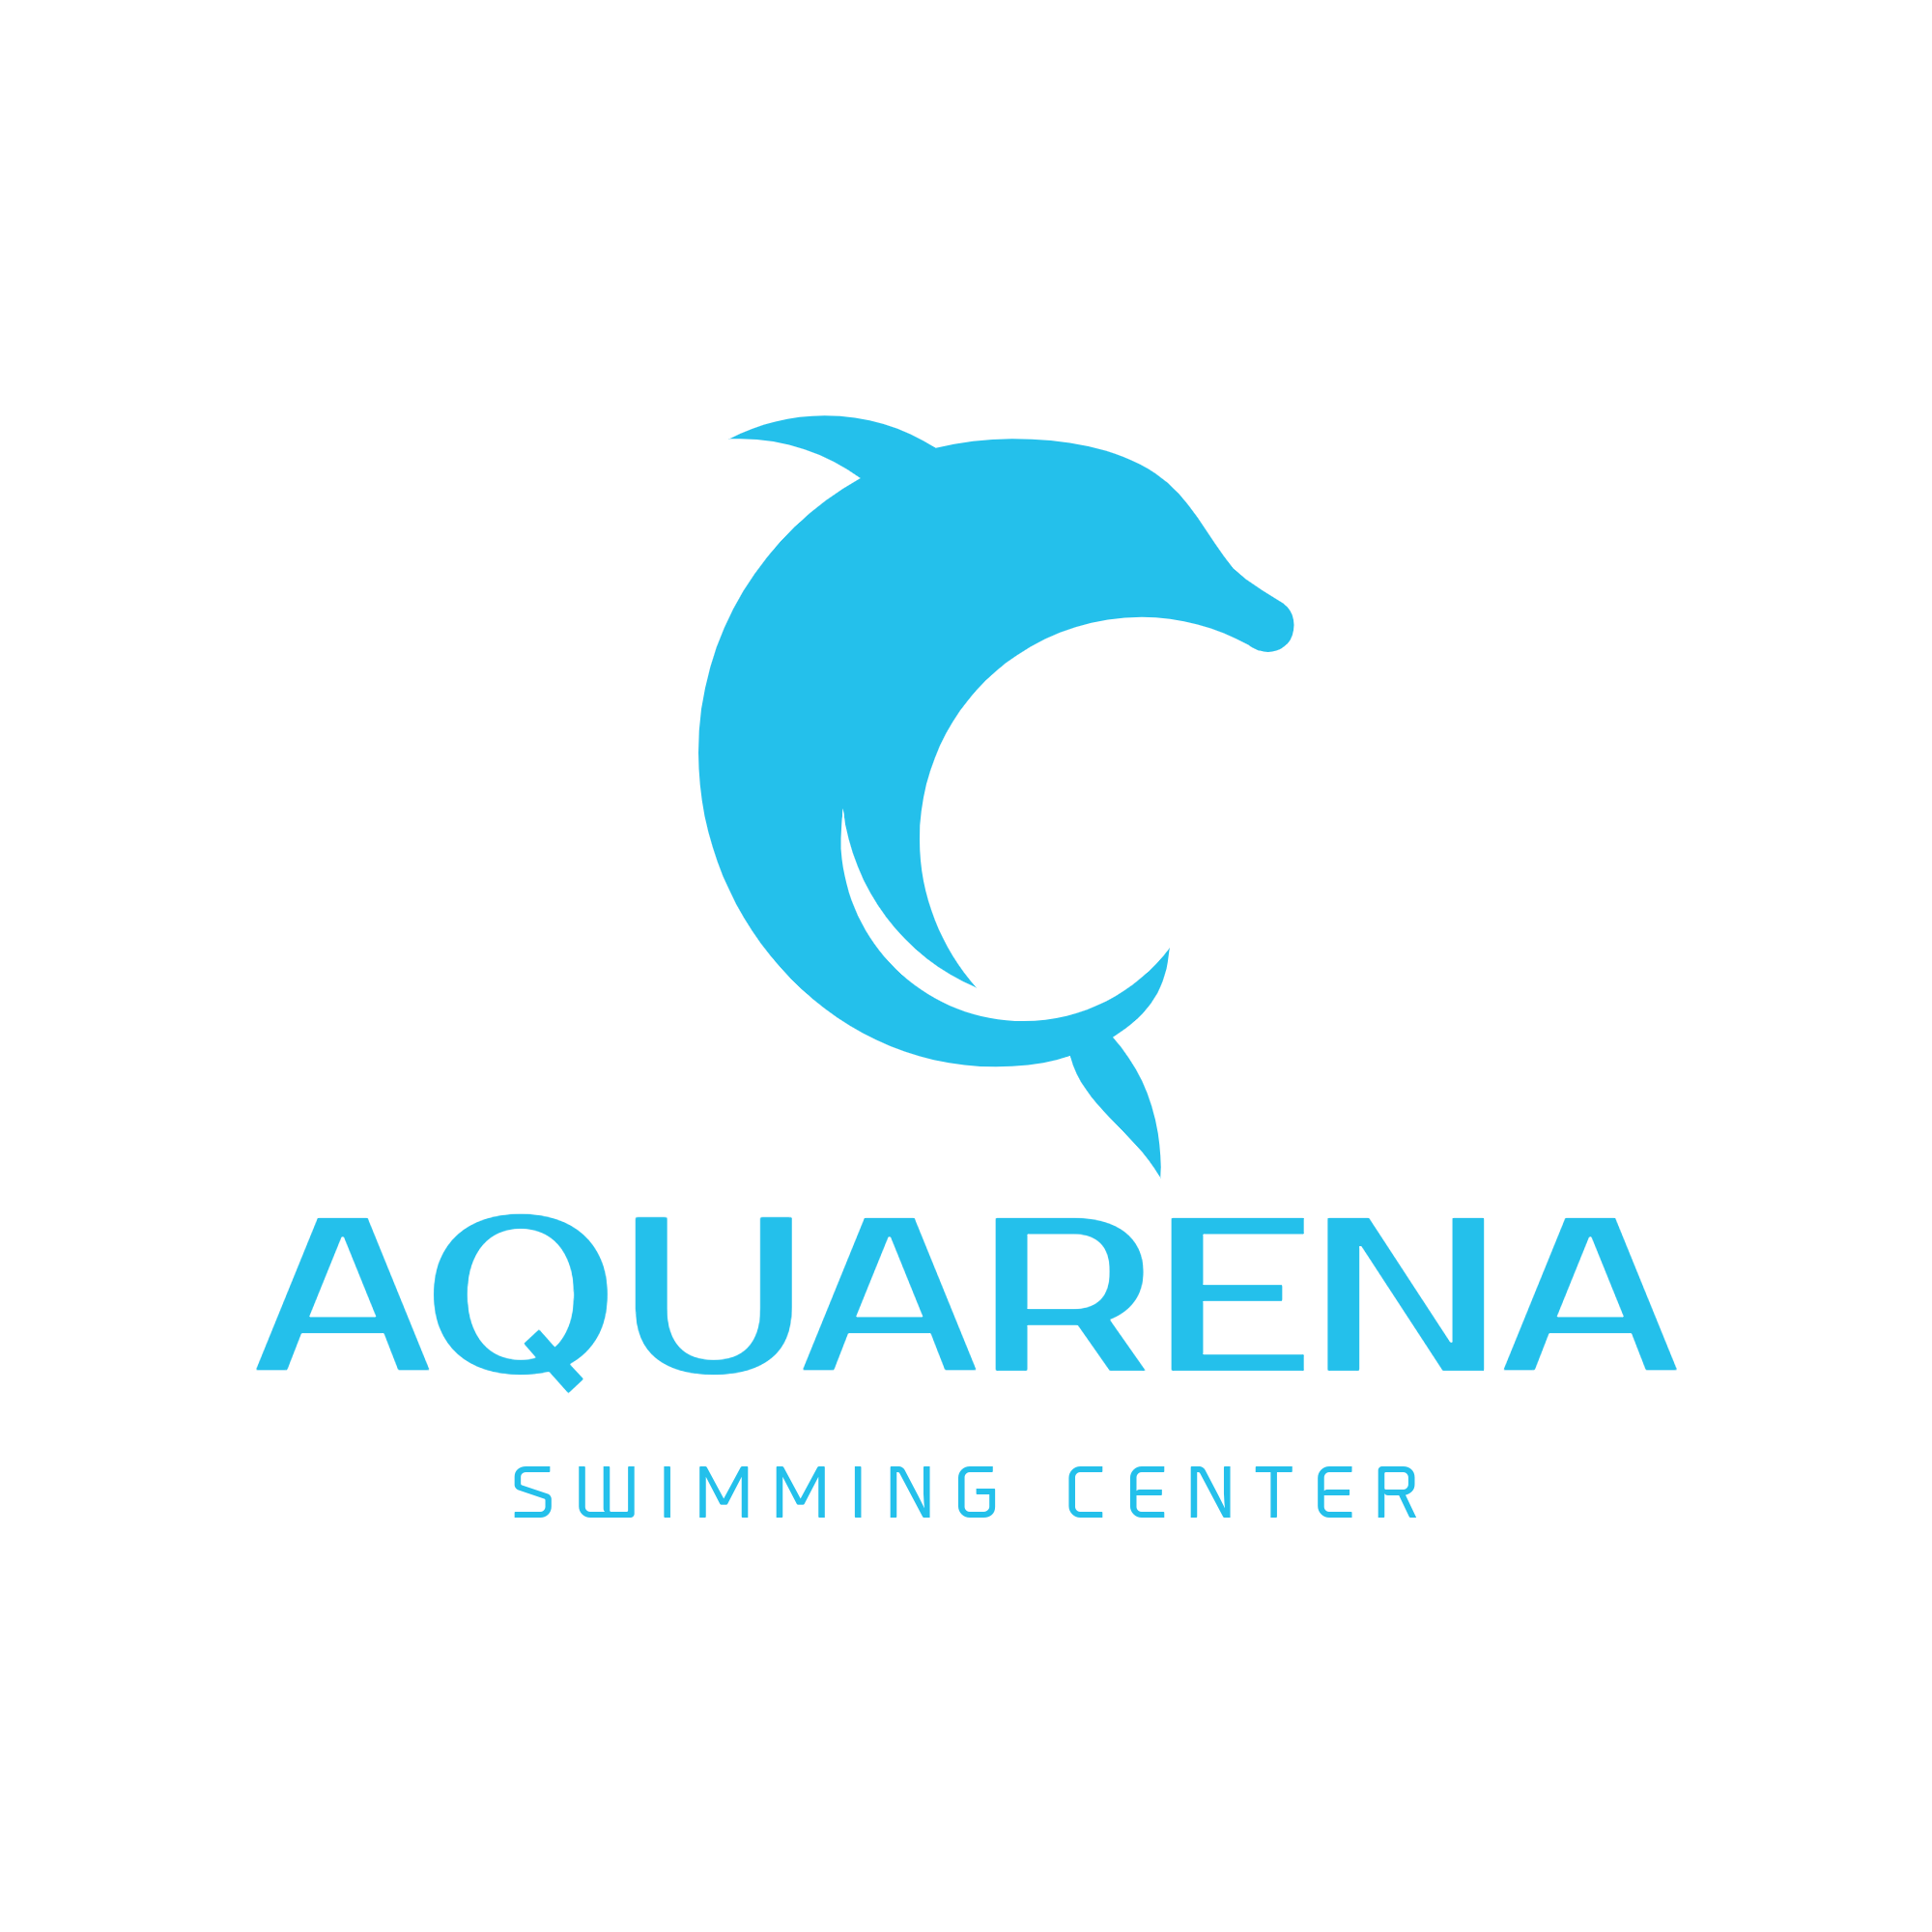 Aquarena Swimming Center Logaster logo